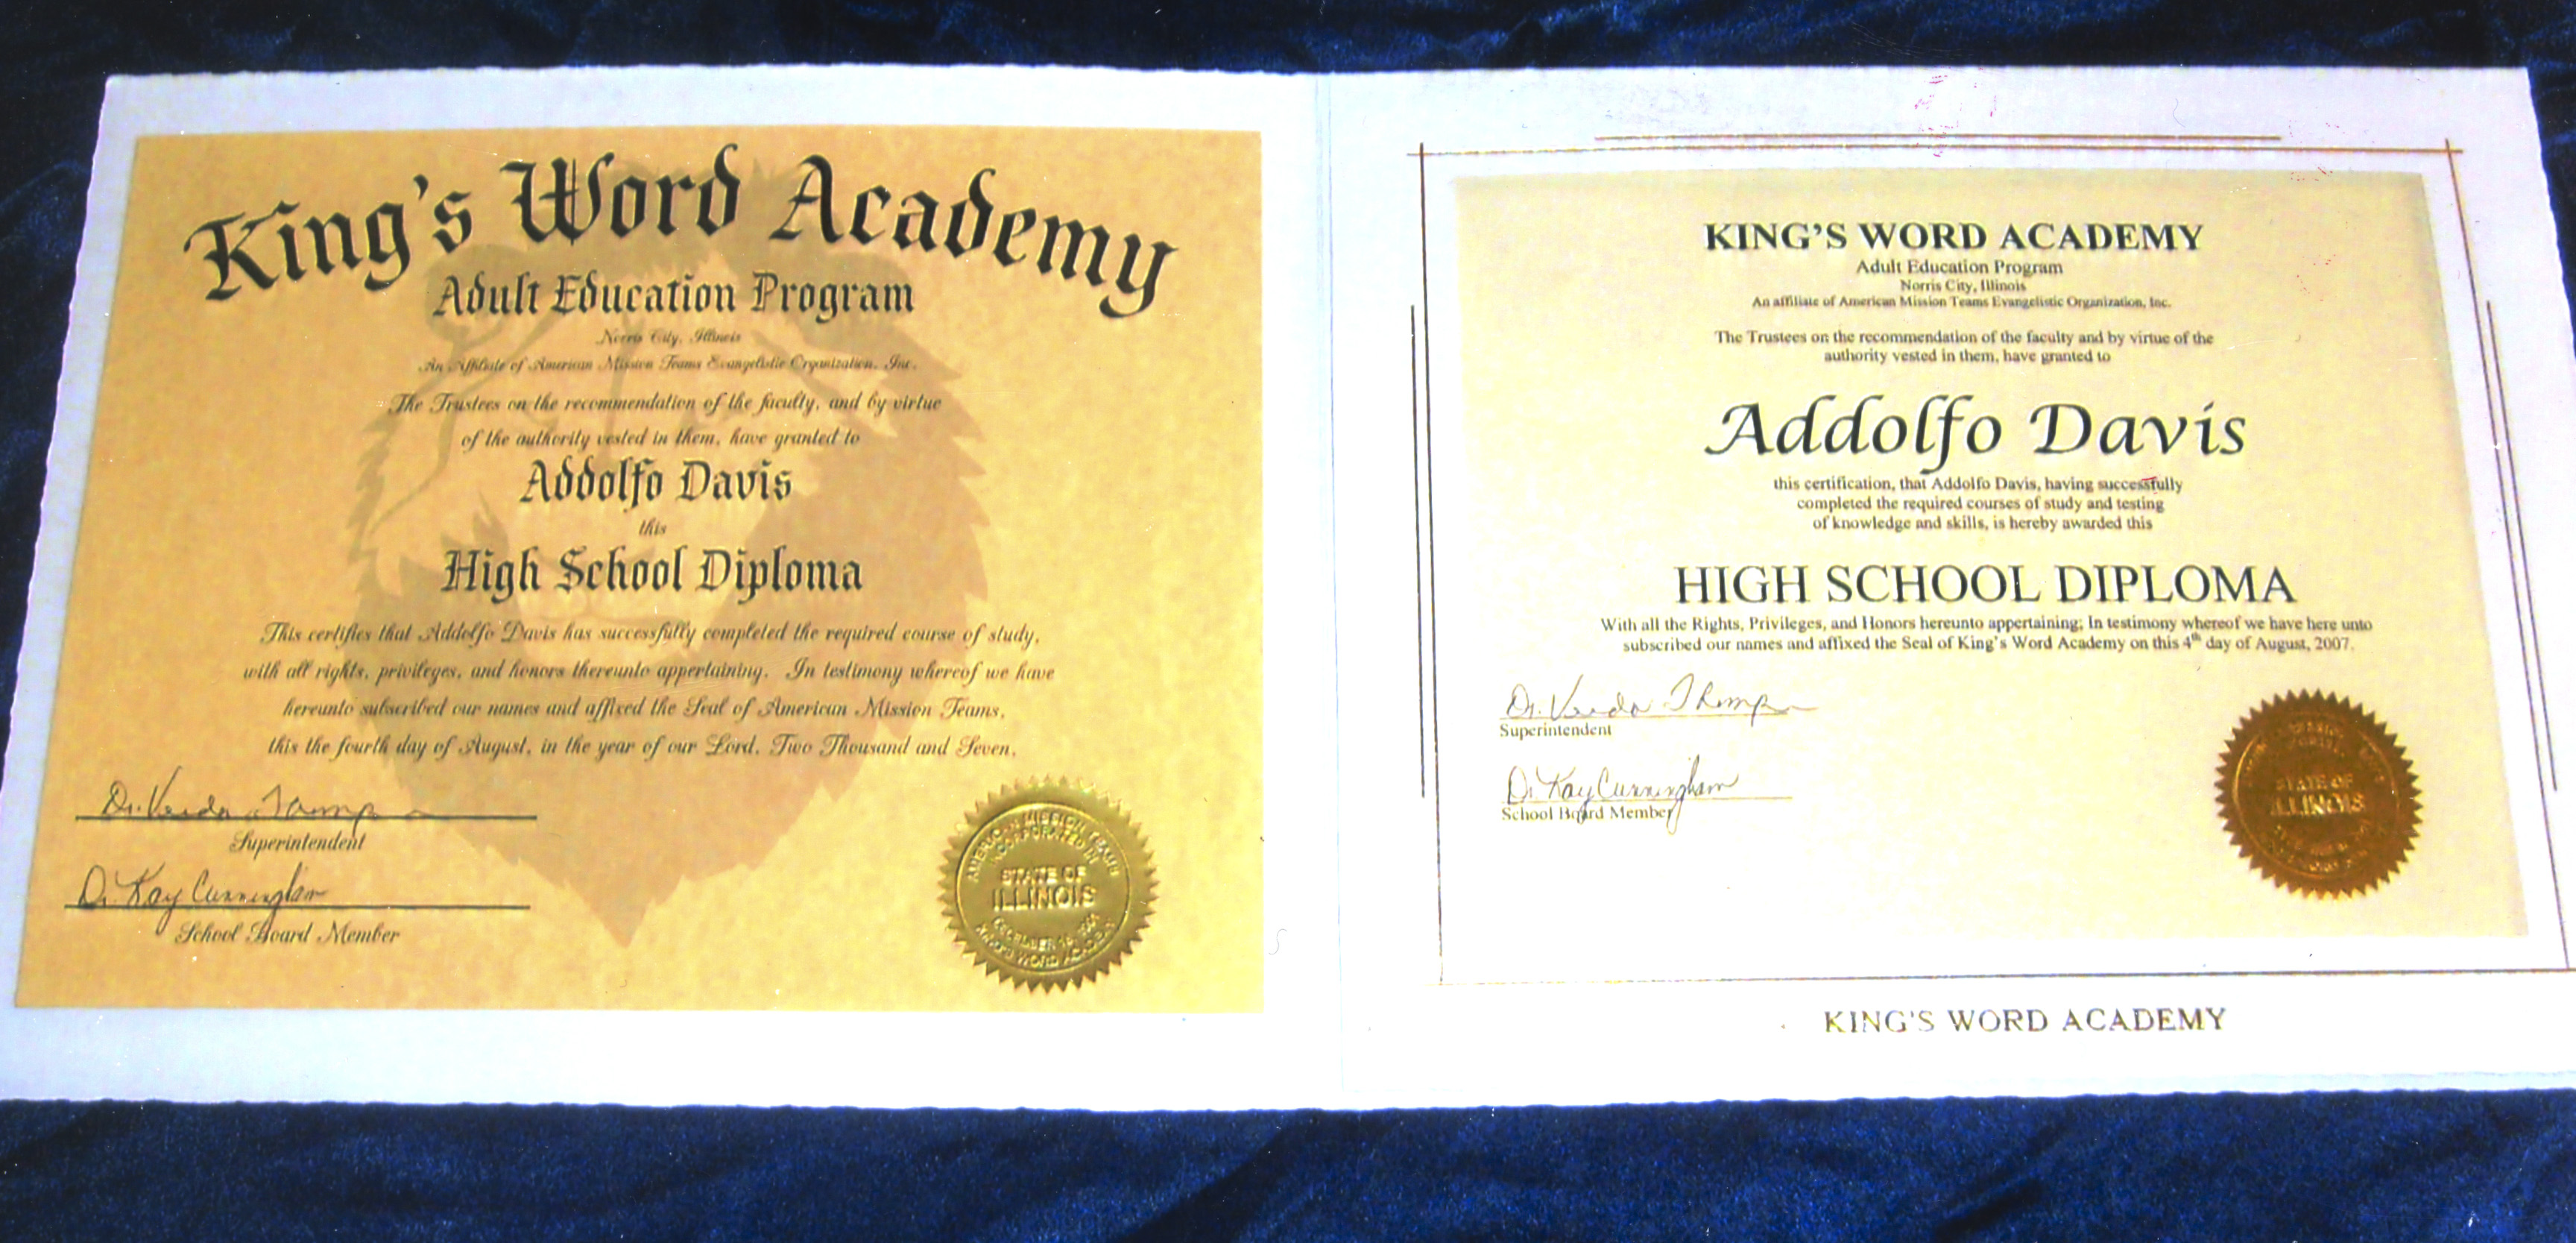 Adolfo Davis' high school diploma & other academic certificates